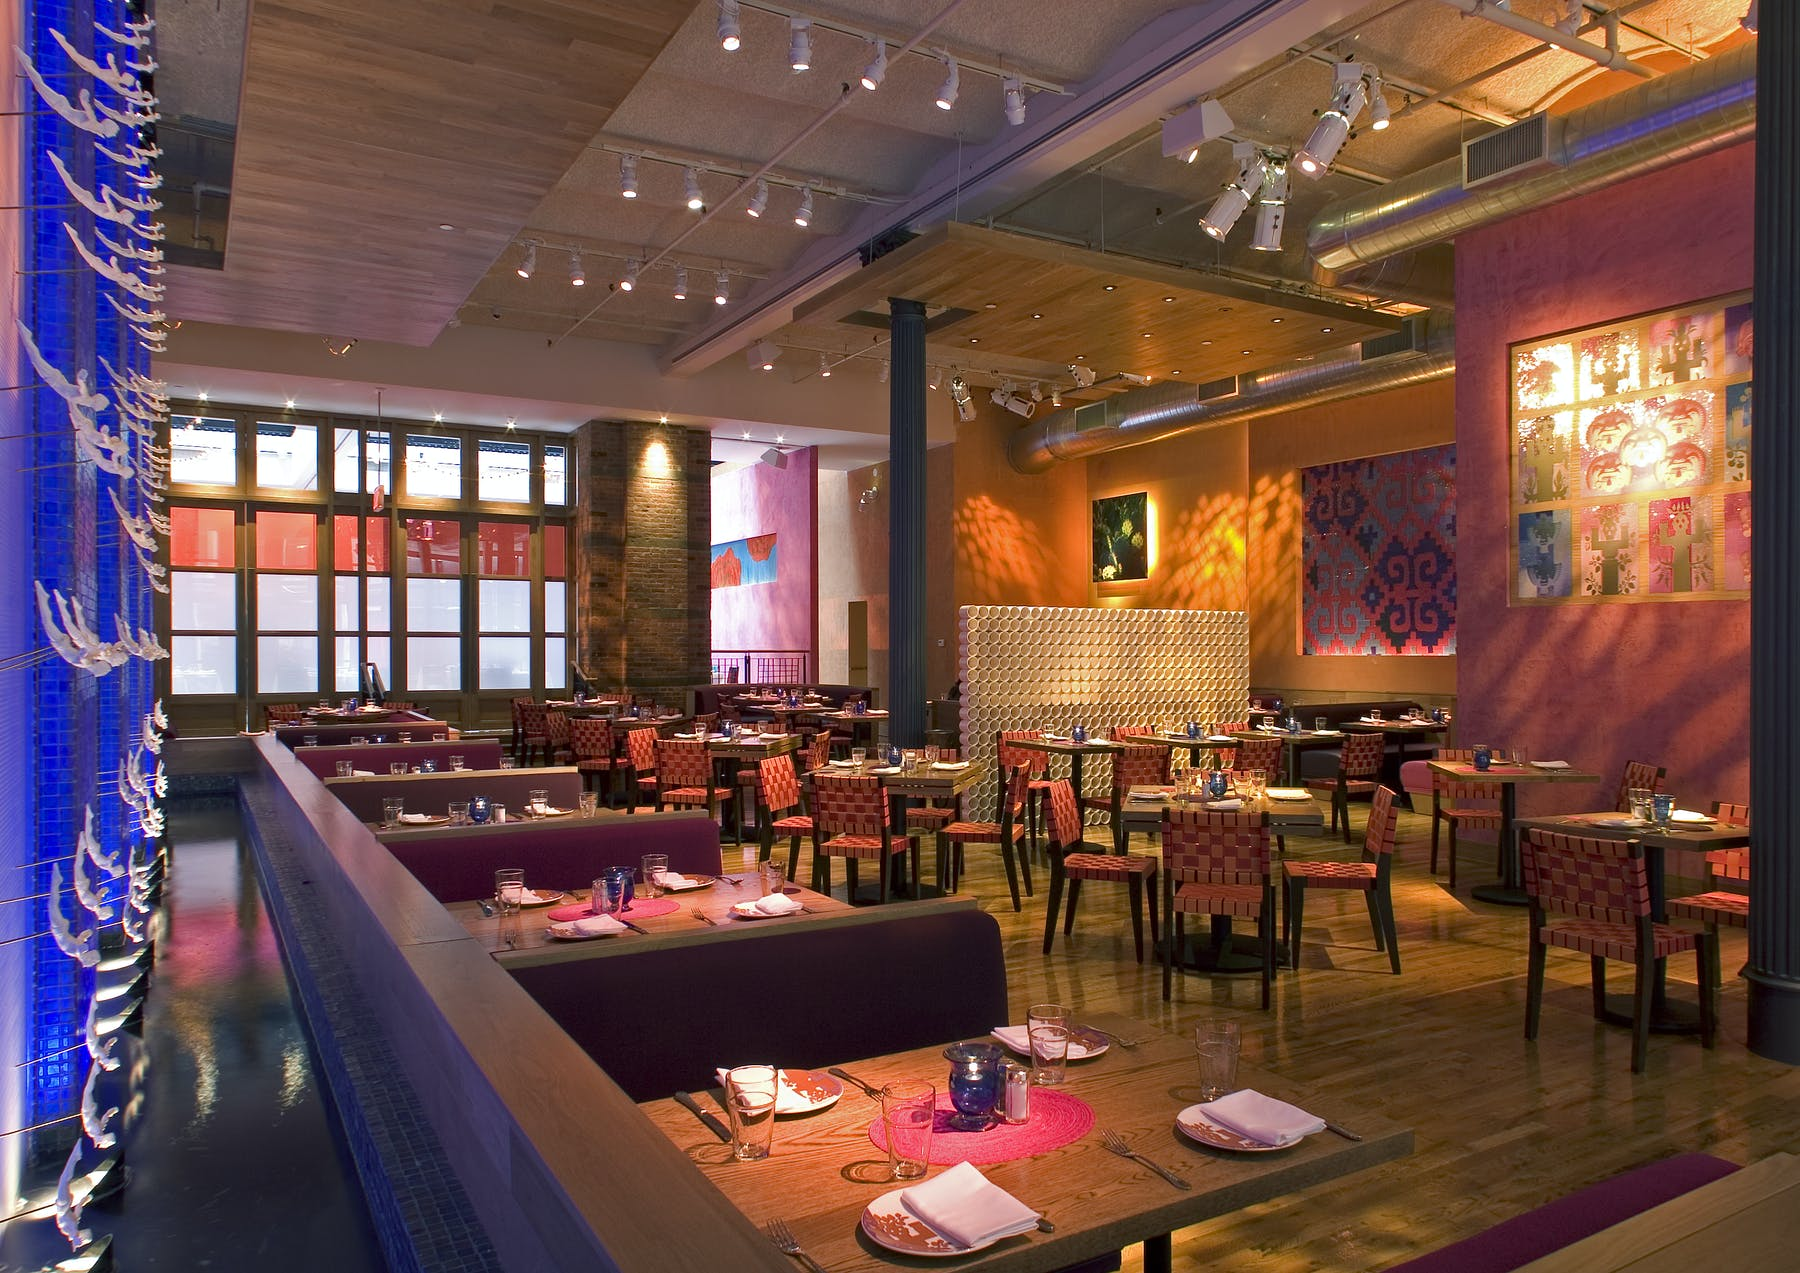 dining tables setup inside Rosa Mexicano in Union Square, NY